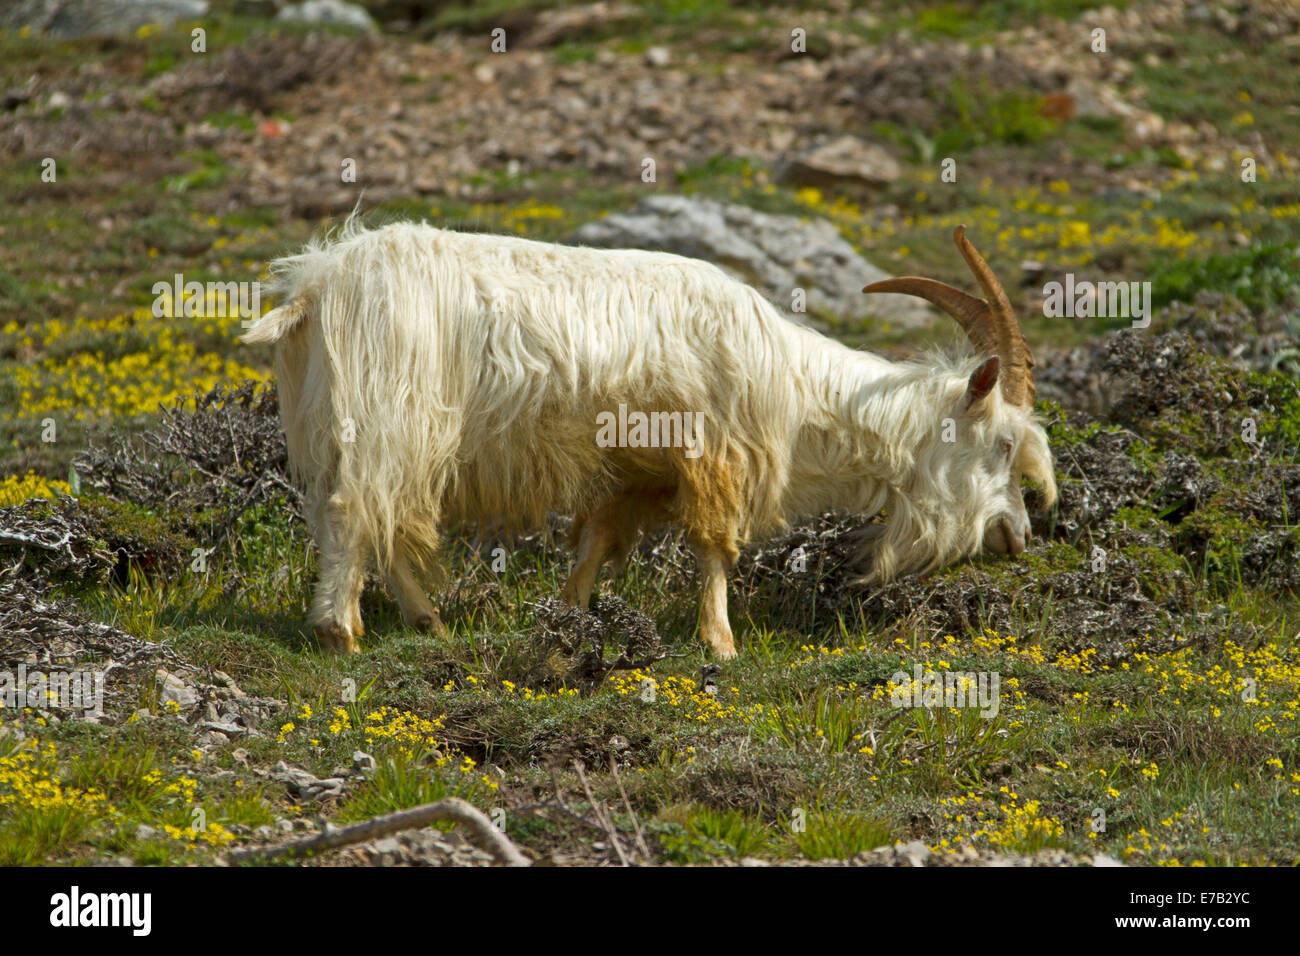 Kashmiri goat, with long shaggy white hair and horns, grazing among yellow wildflowers on slopes of Great Orme, - Stock Image